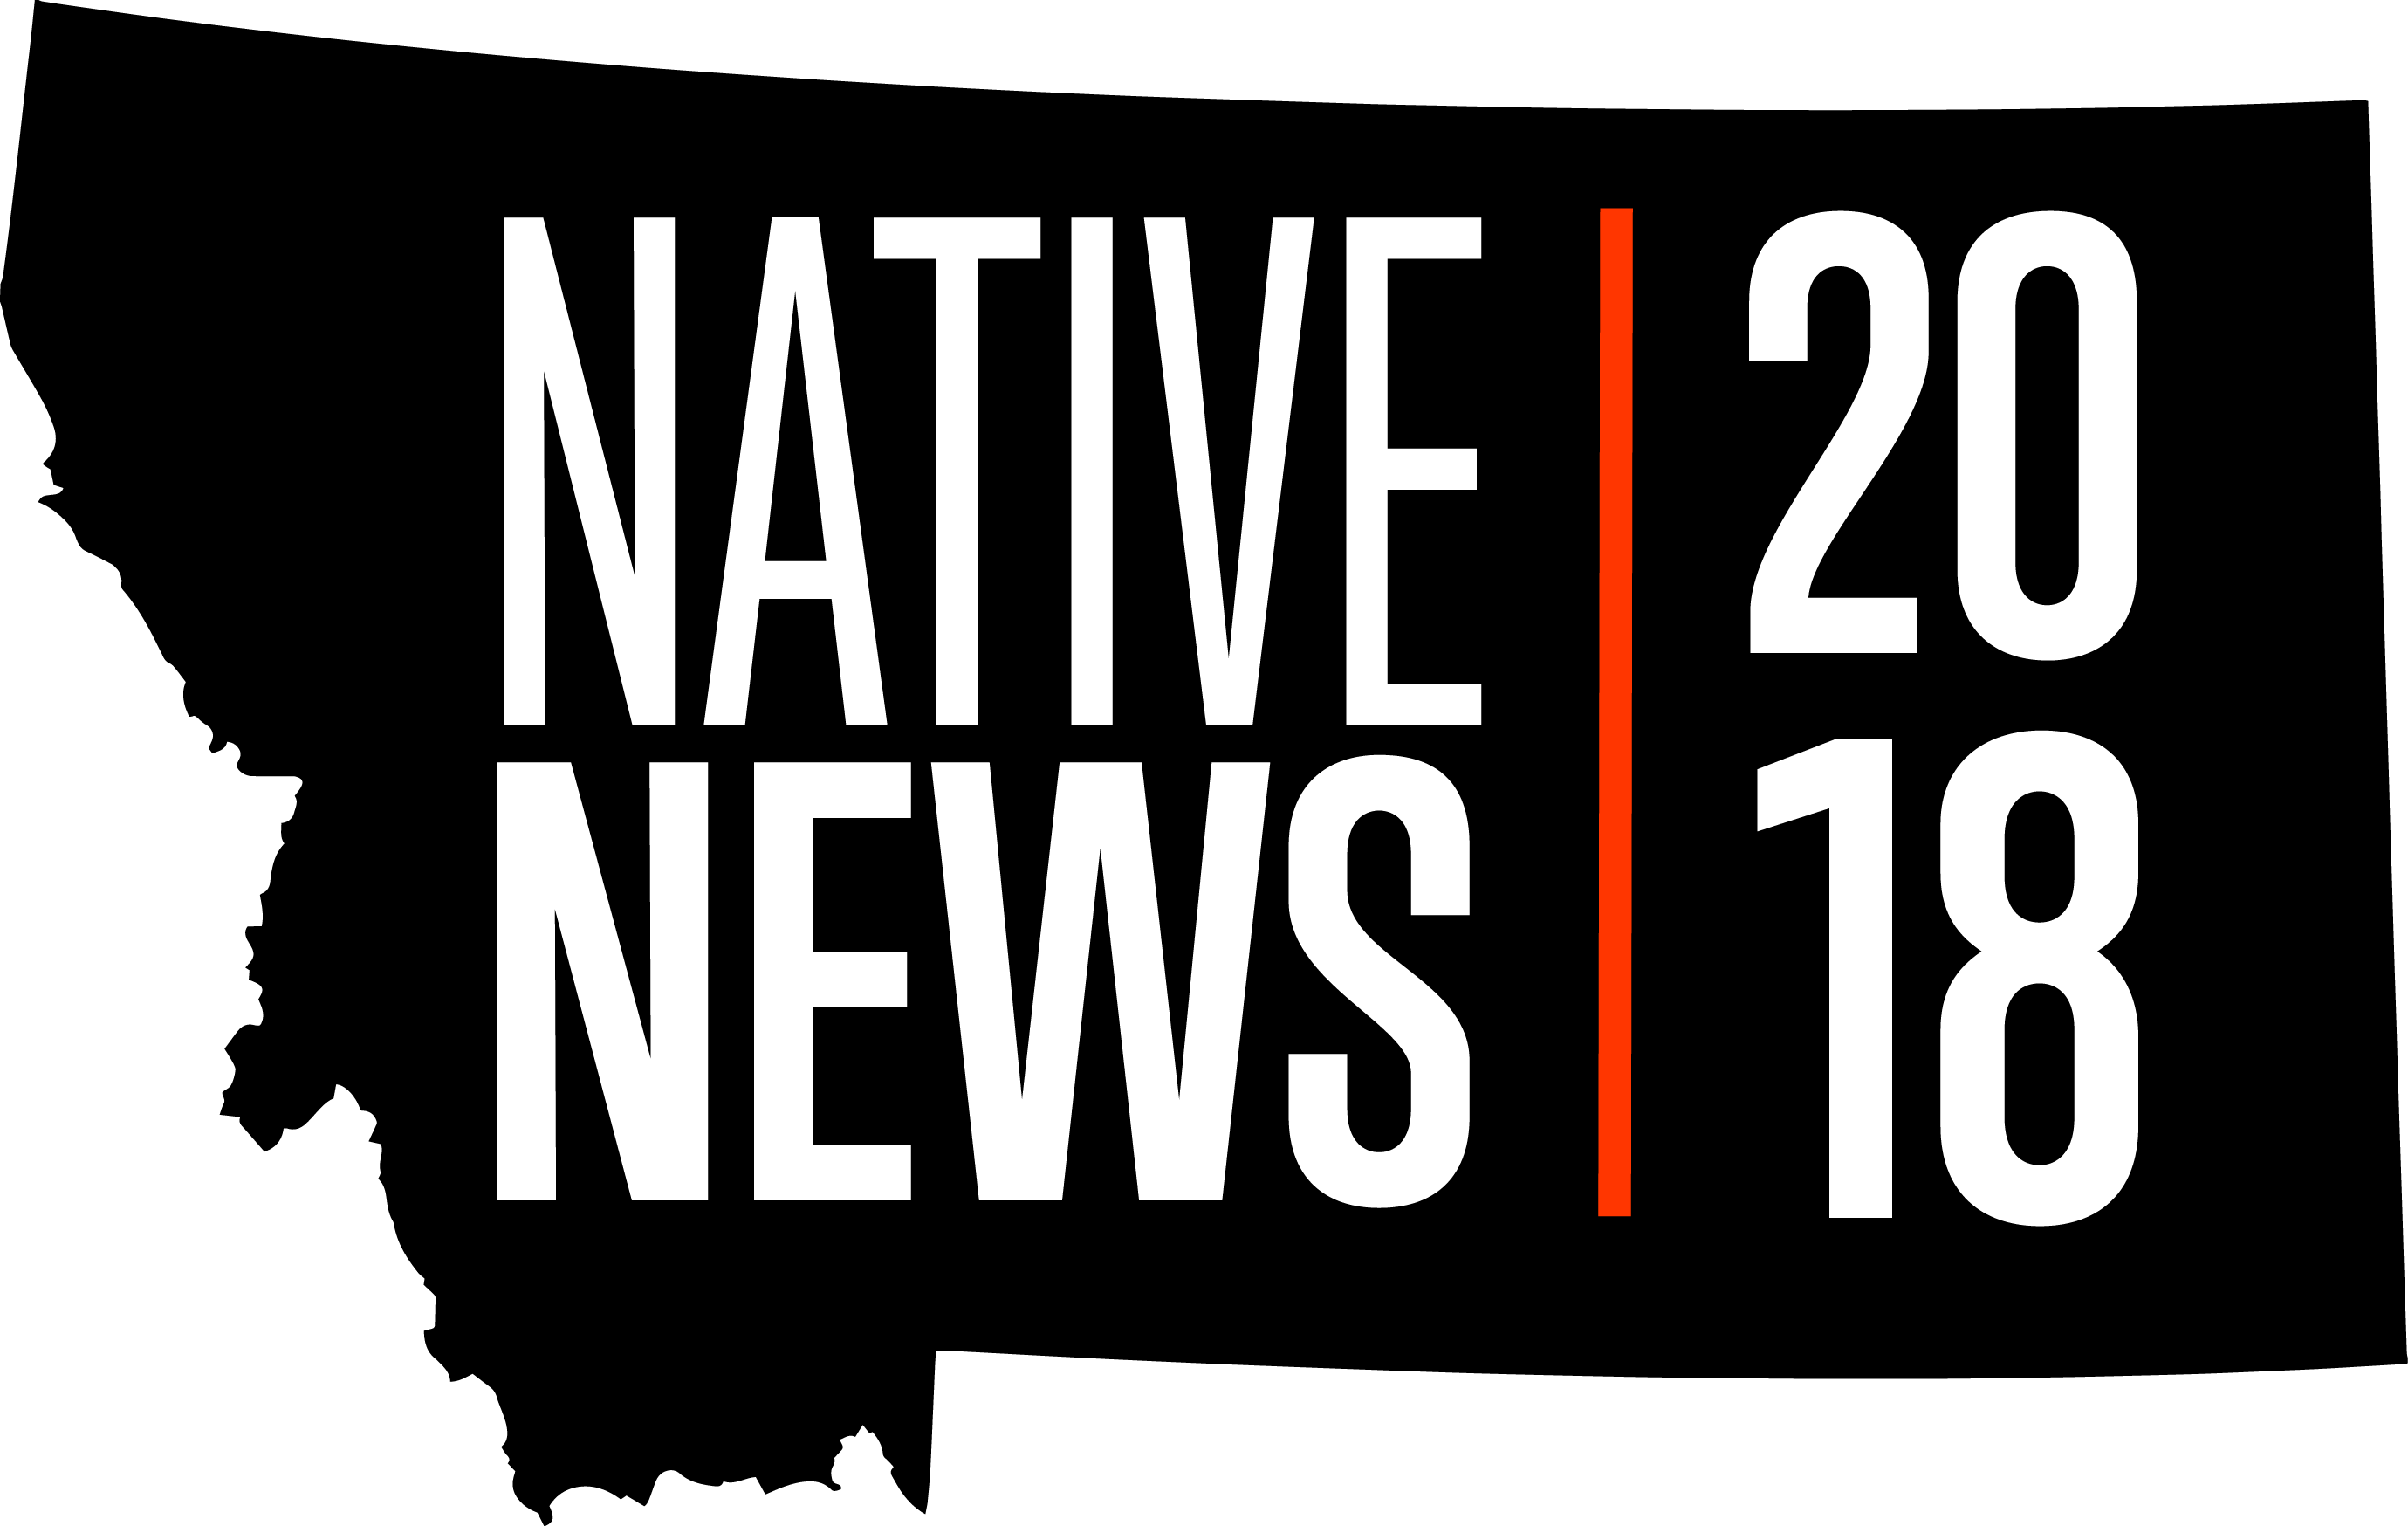 Native News 2018